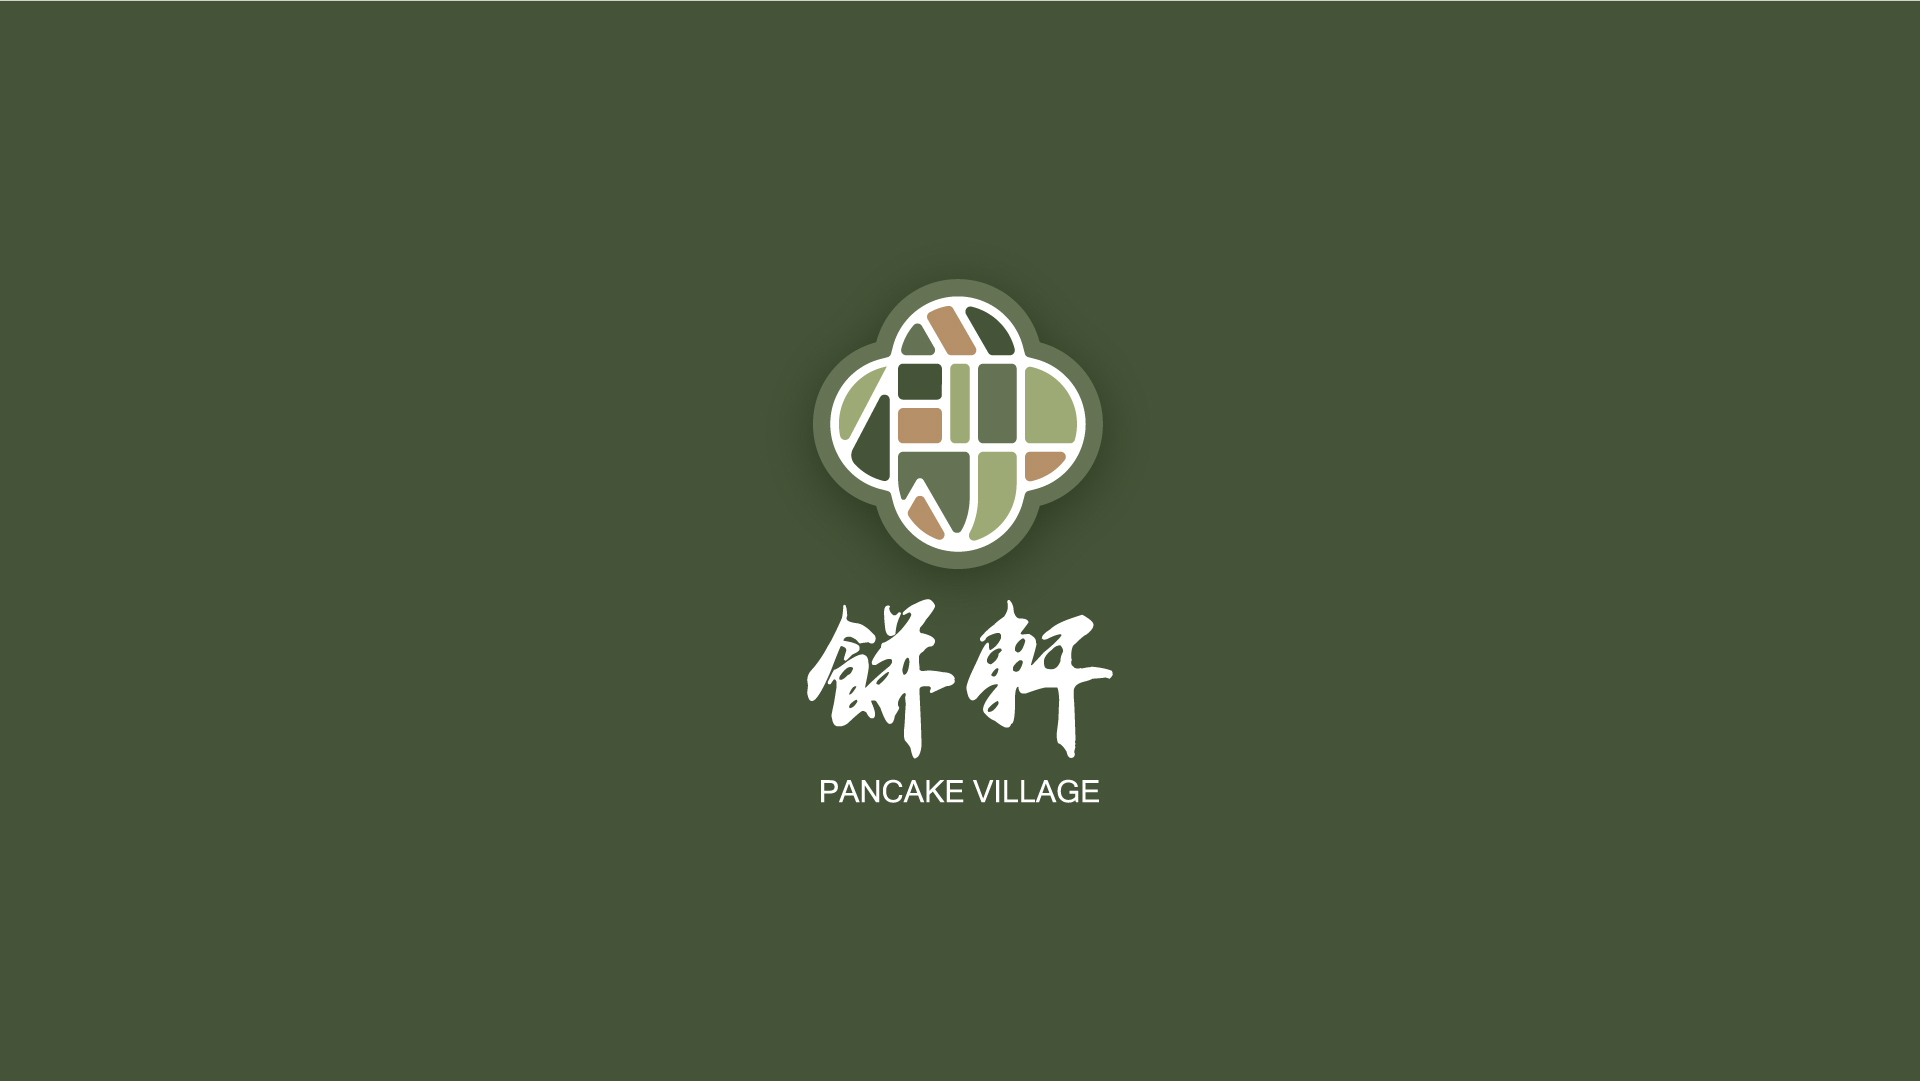 pancake village branding by Z Creative Studio Branding & Graphic Design Melbourne